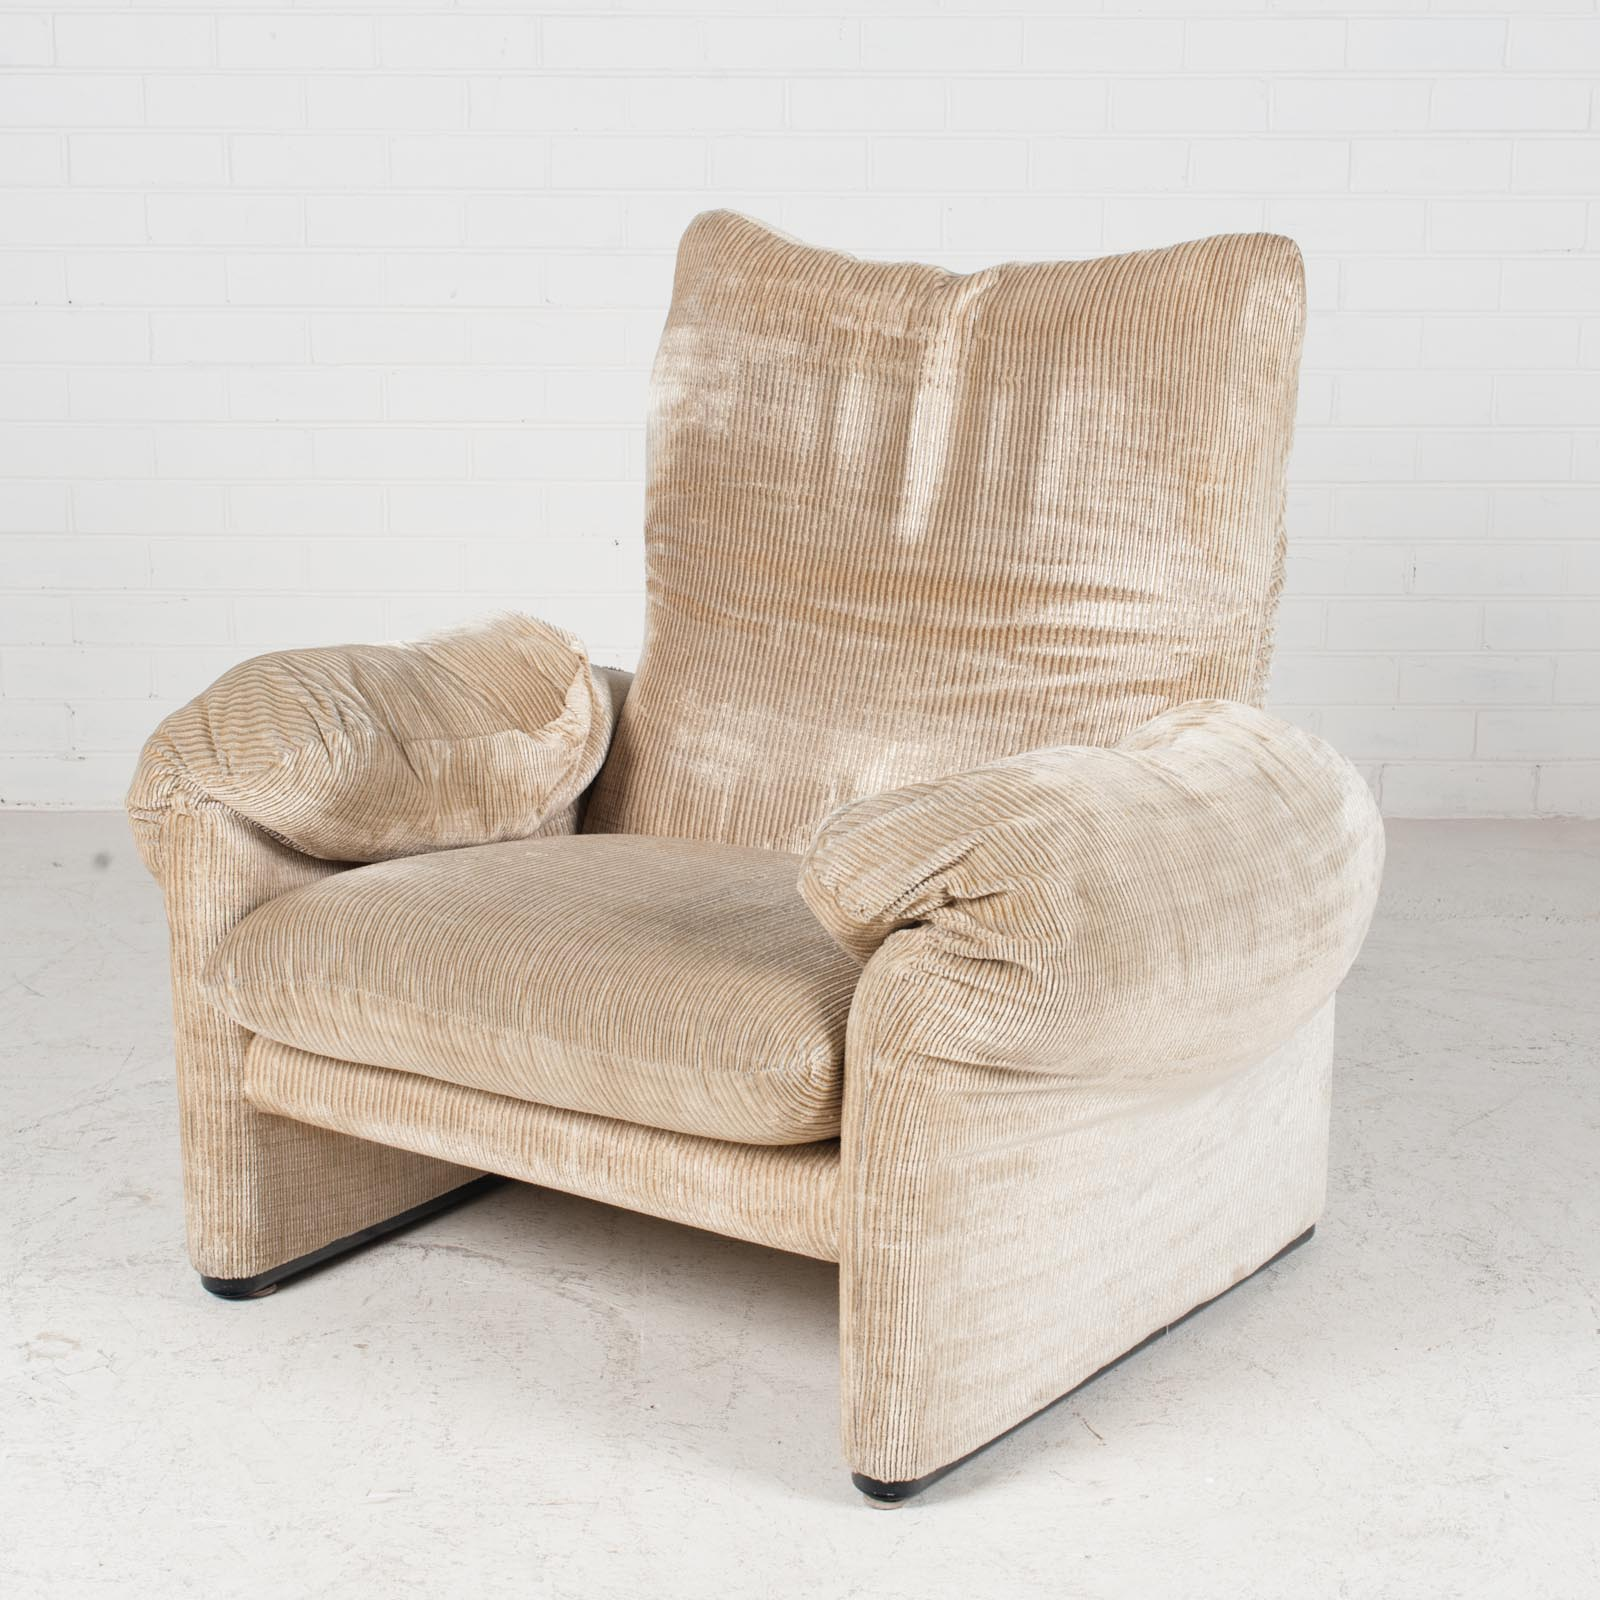 Maralunga Armchair By Vico Magistretti For Cassina In Original Upholstery 1970s Italy 03